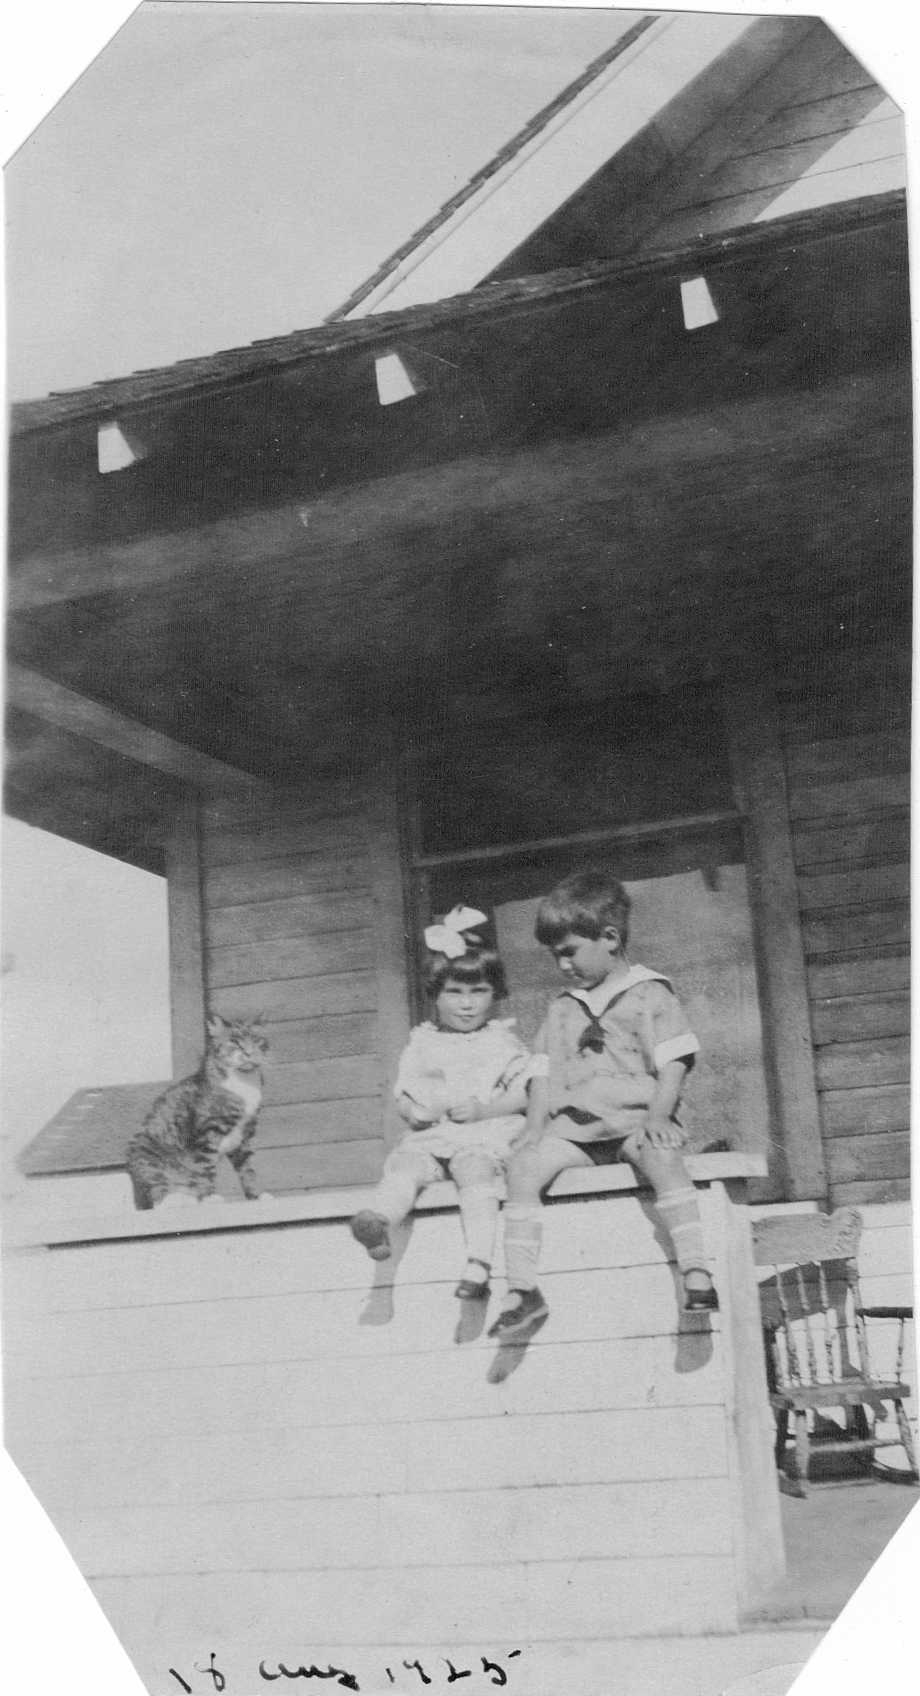 August 18, 1925 Doris and Hubert Brooks on Porch with Cat